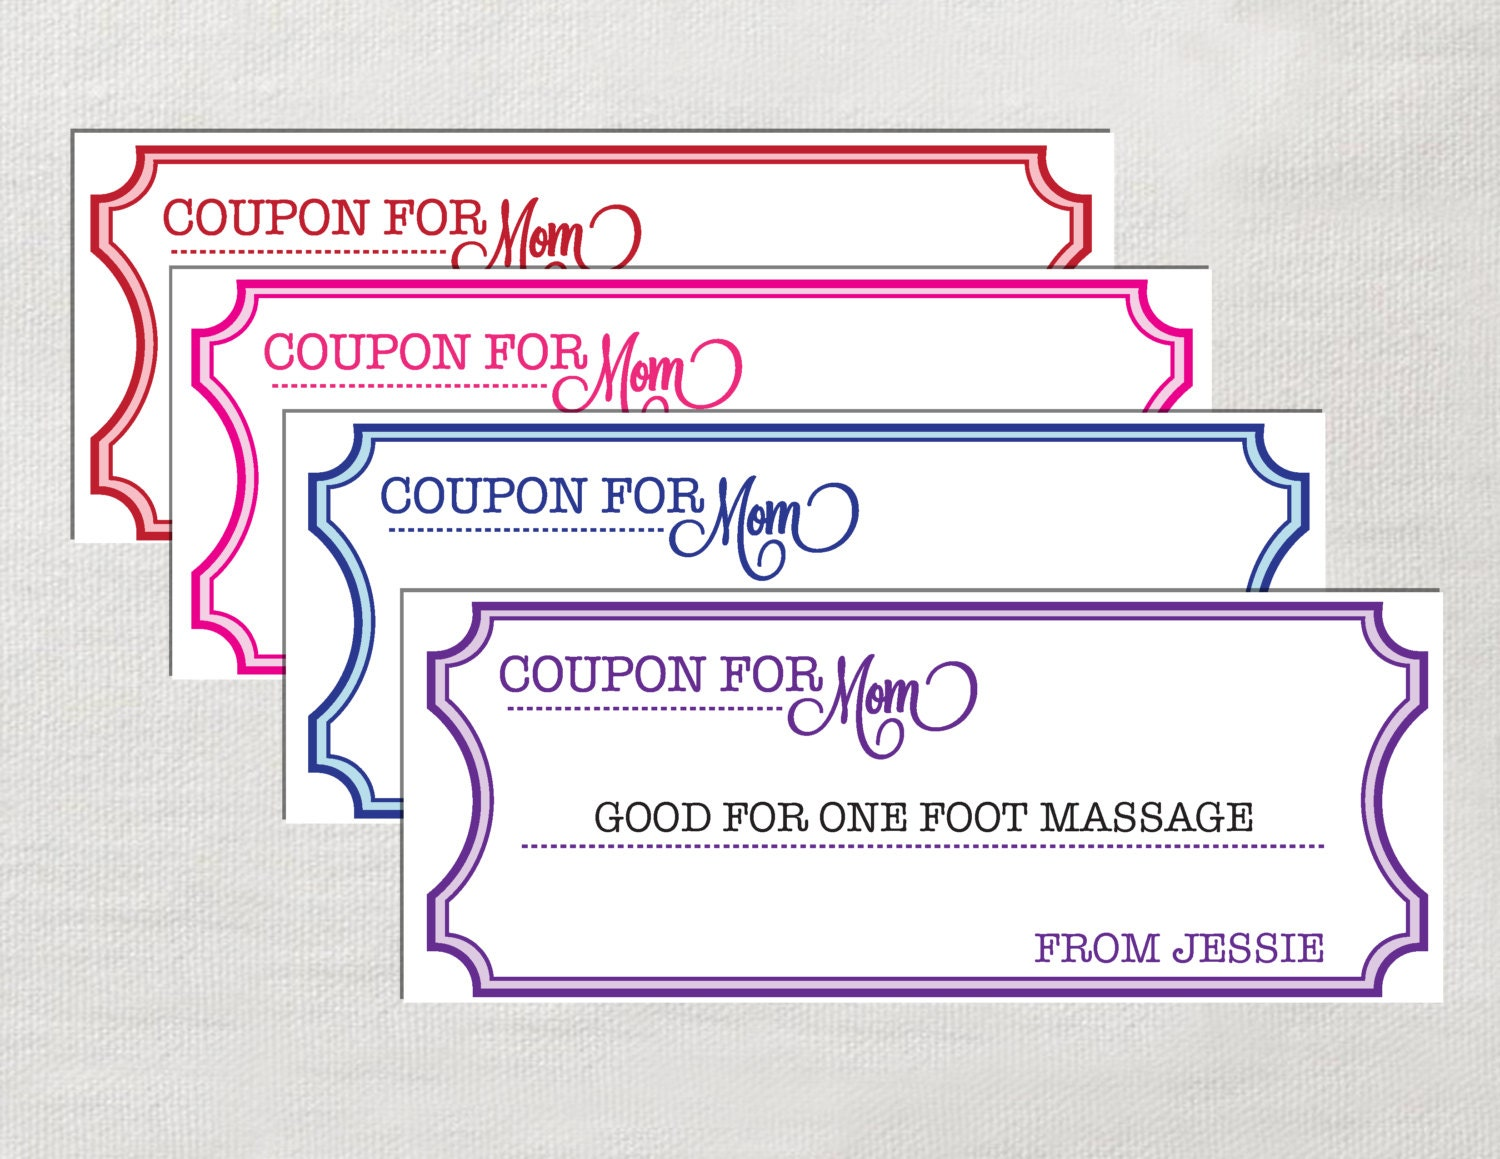 Love Coupon Template Microsoft Word Items similar to mother's day love ...: imgarcade.com/1/love-coupon-template-microsoft-word